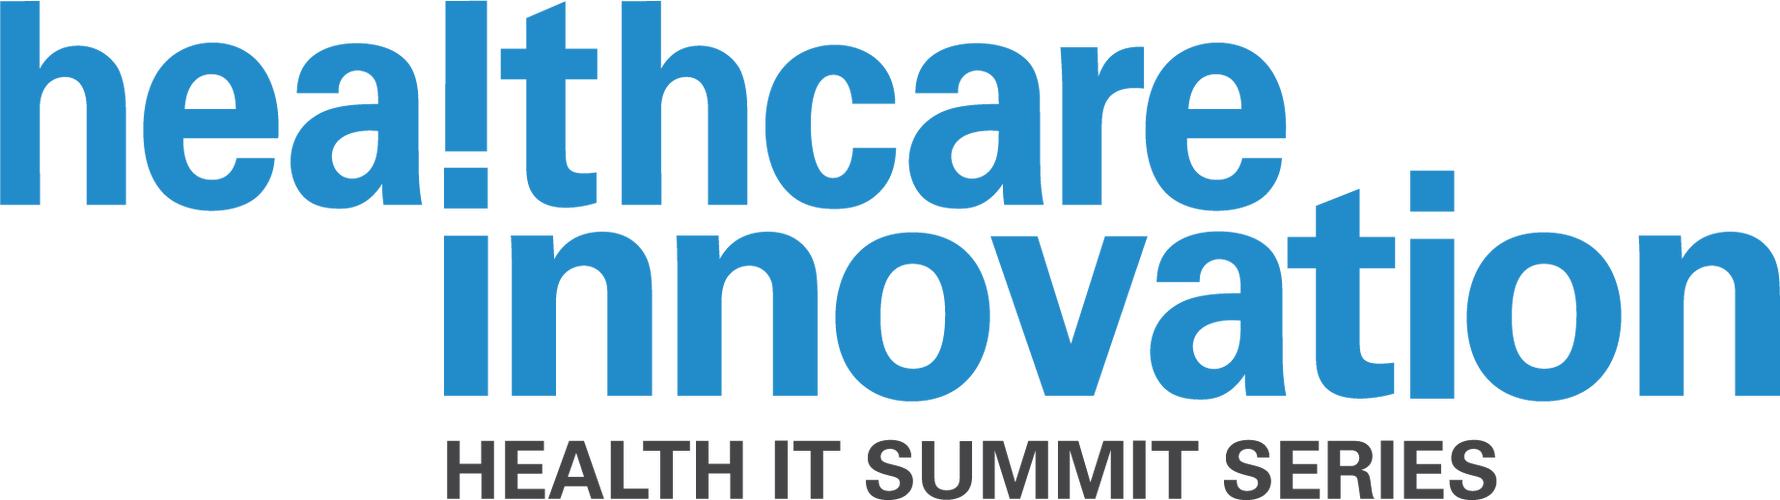 2019 Southwest Health IT Summit - Houston